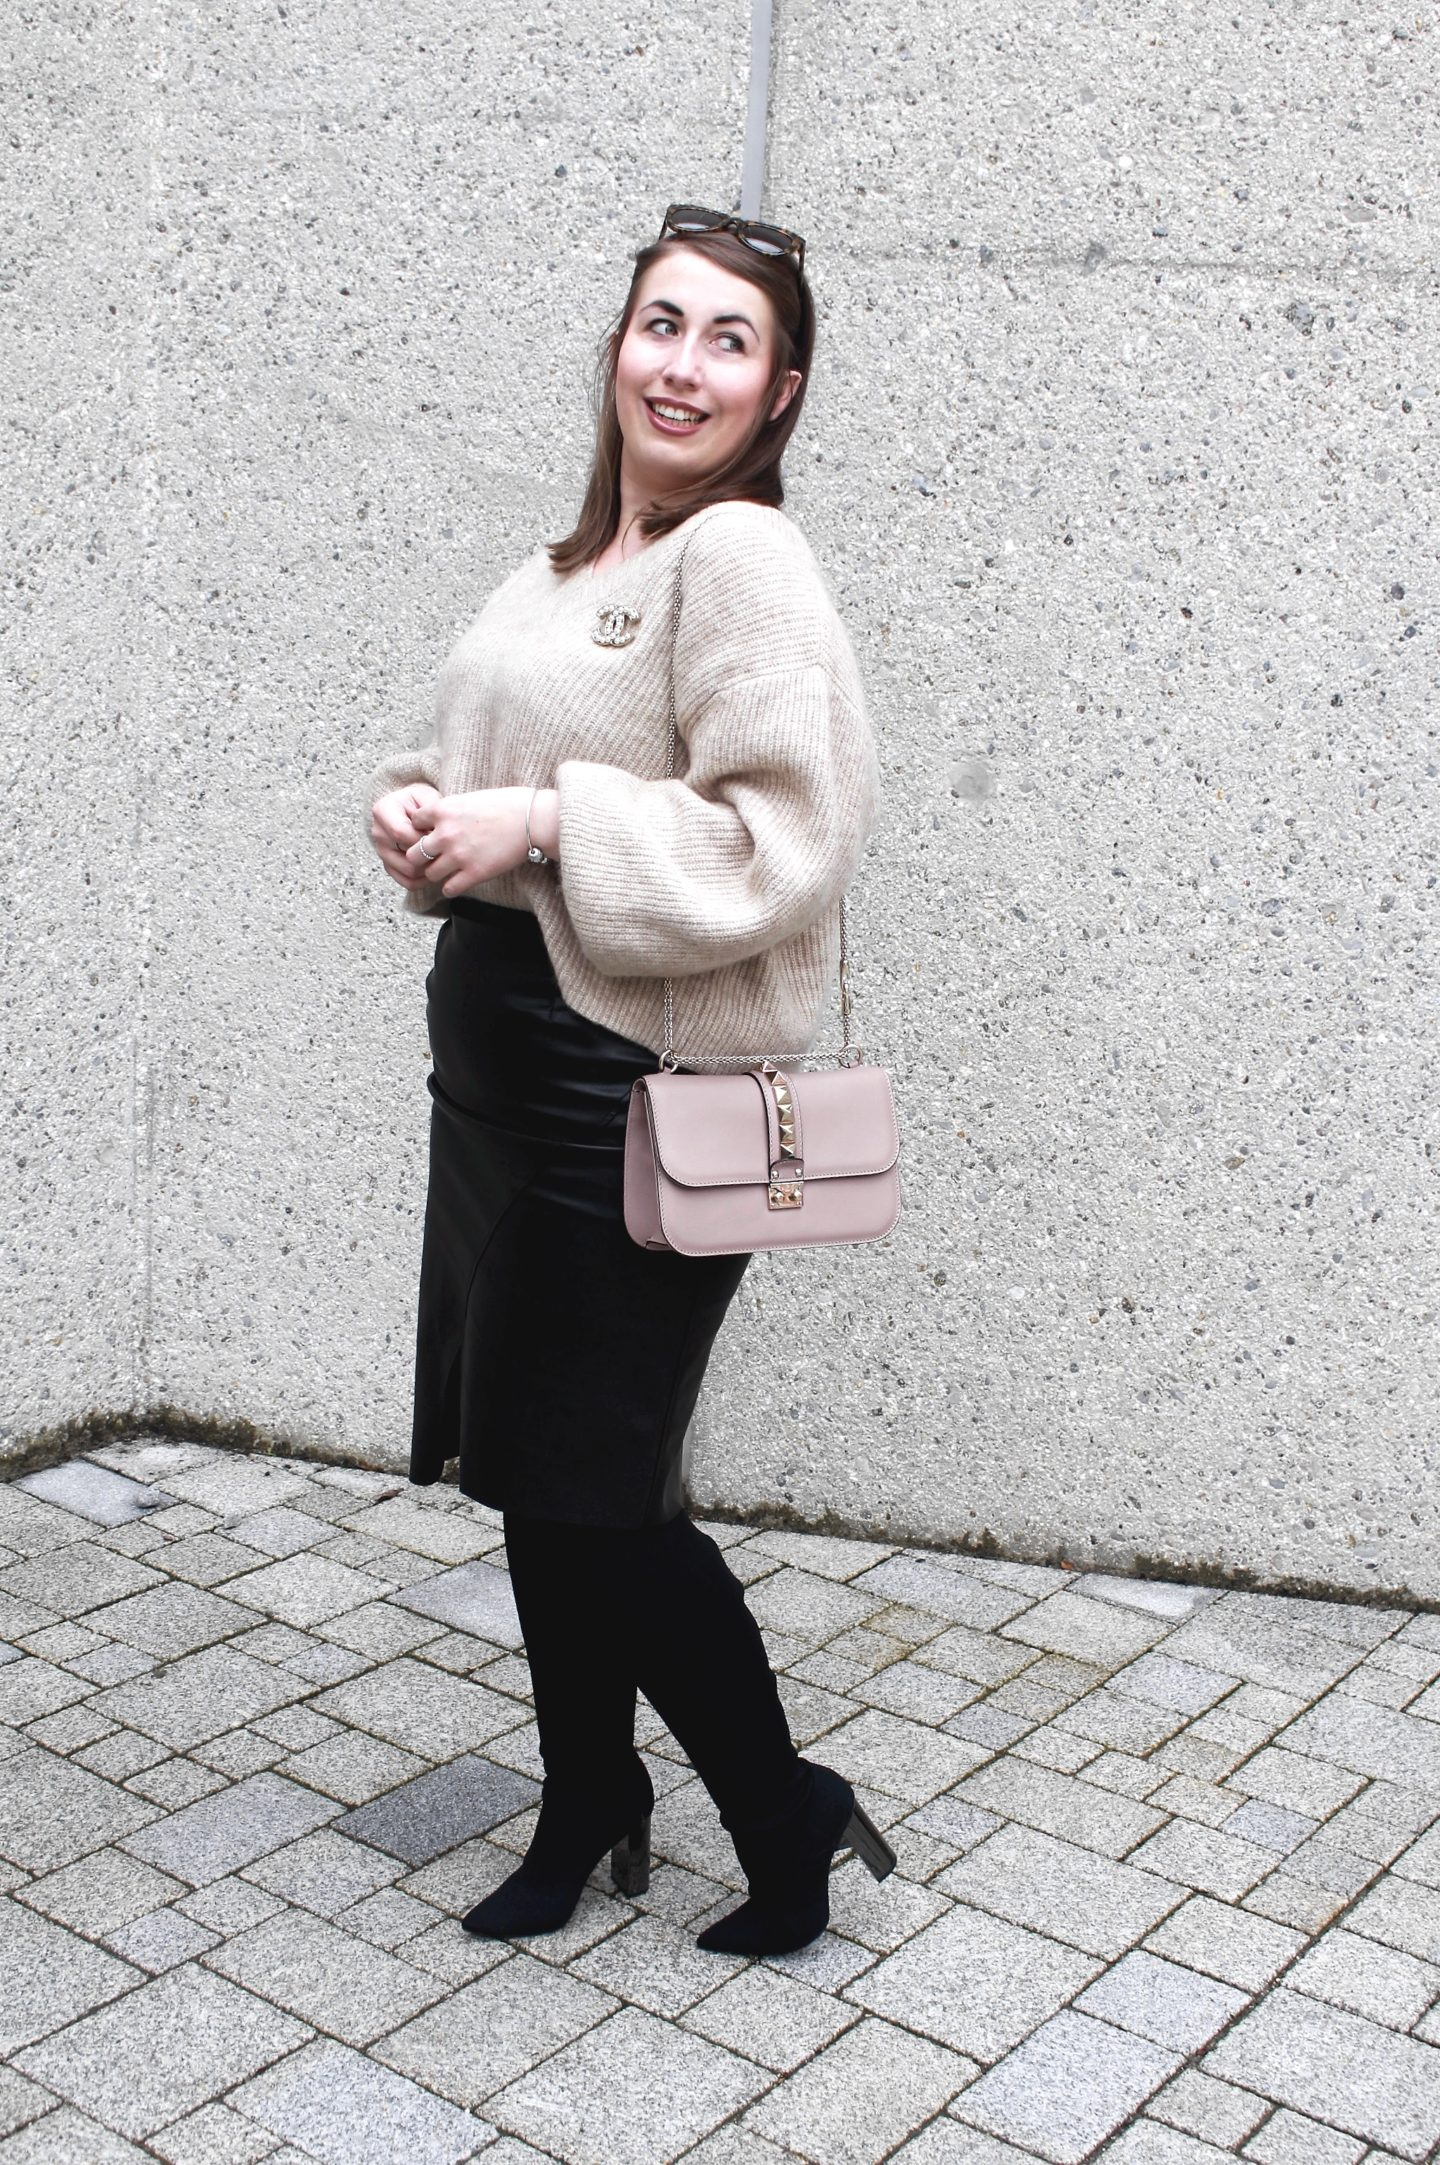 outfit-fashionblogger-susanne-heidebach-lederrock-bleistiftrock-overknees-metallic-valentino-rockstud-glam-lock-bag-winteroutfit-curvyblogger-wollpullover-mohair-pullover-chanel-brosche-miss-suzie-loves-münchen-blogger-germanblogger